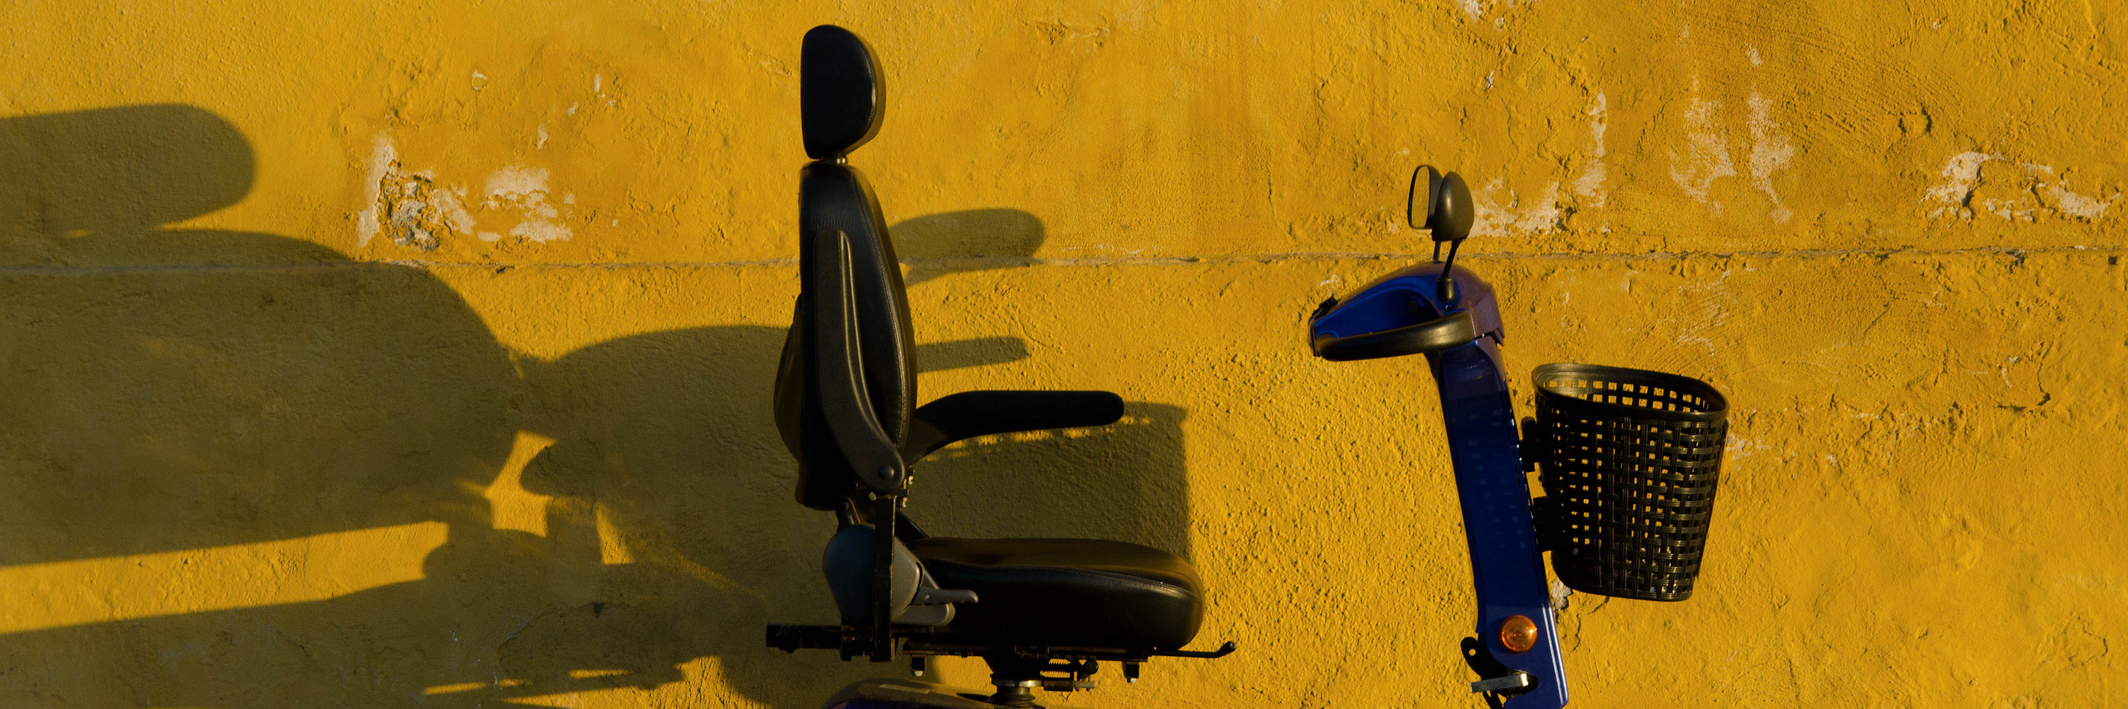 Blue scooter against yellow wall.